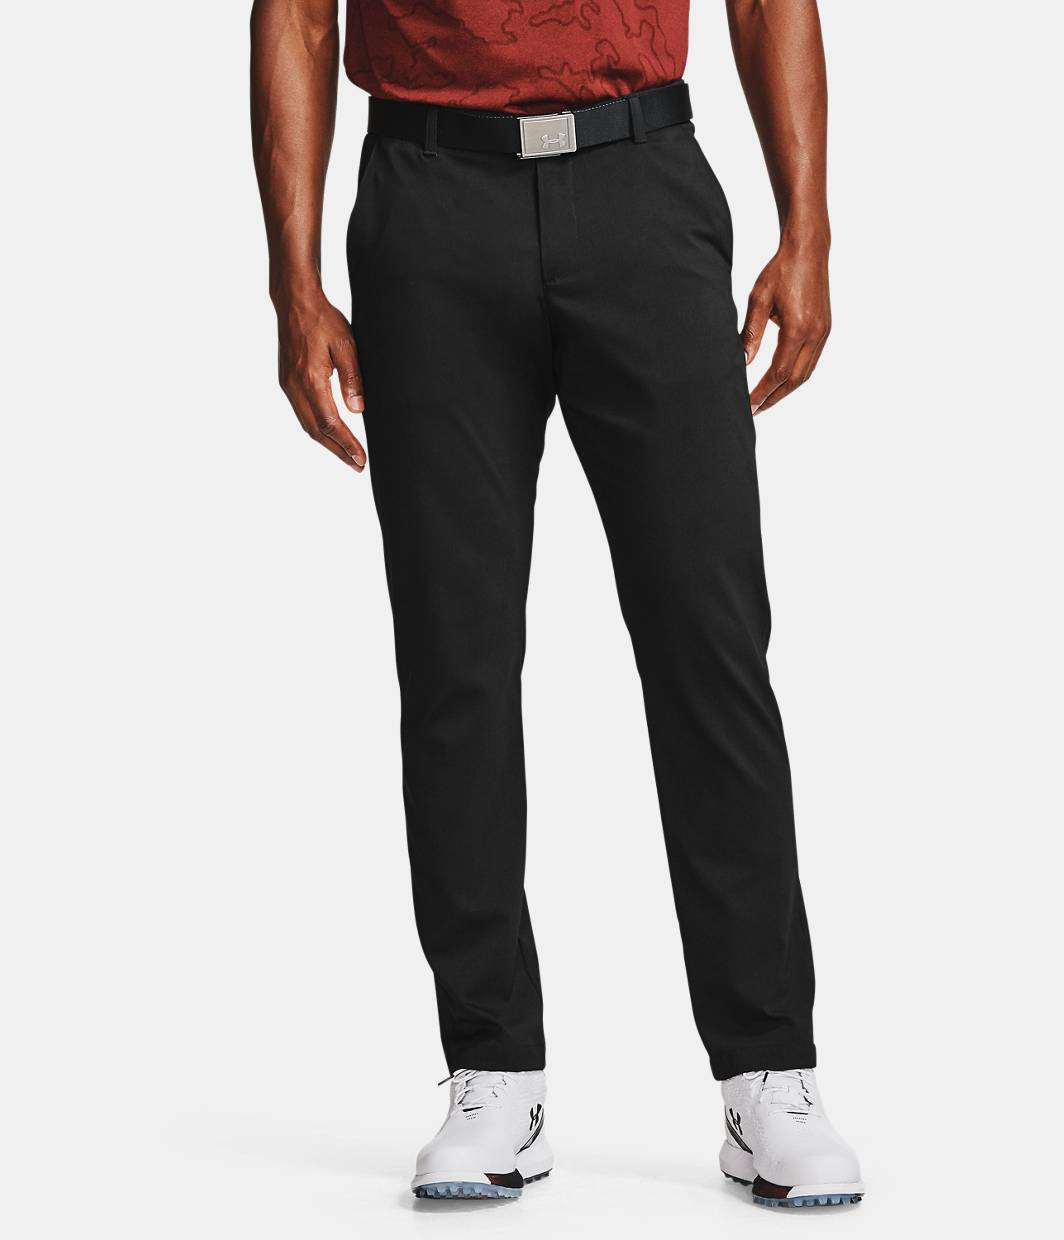 801529763a2a92 New Arrival Men s UA Showdown Tapered Pants 7 Colors Available  80